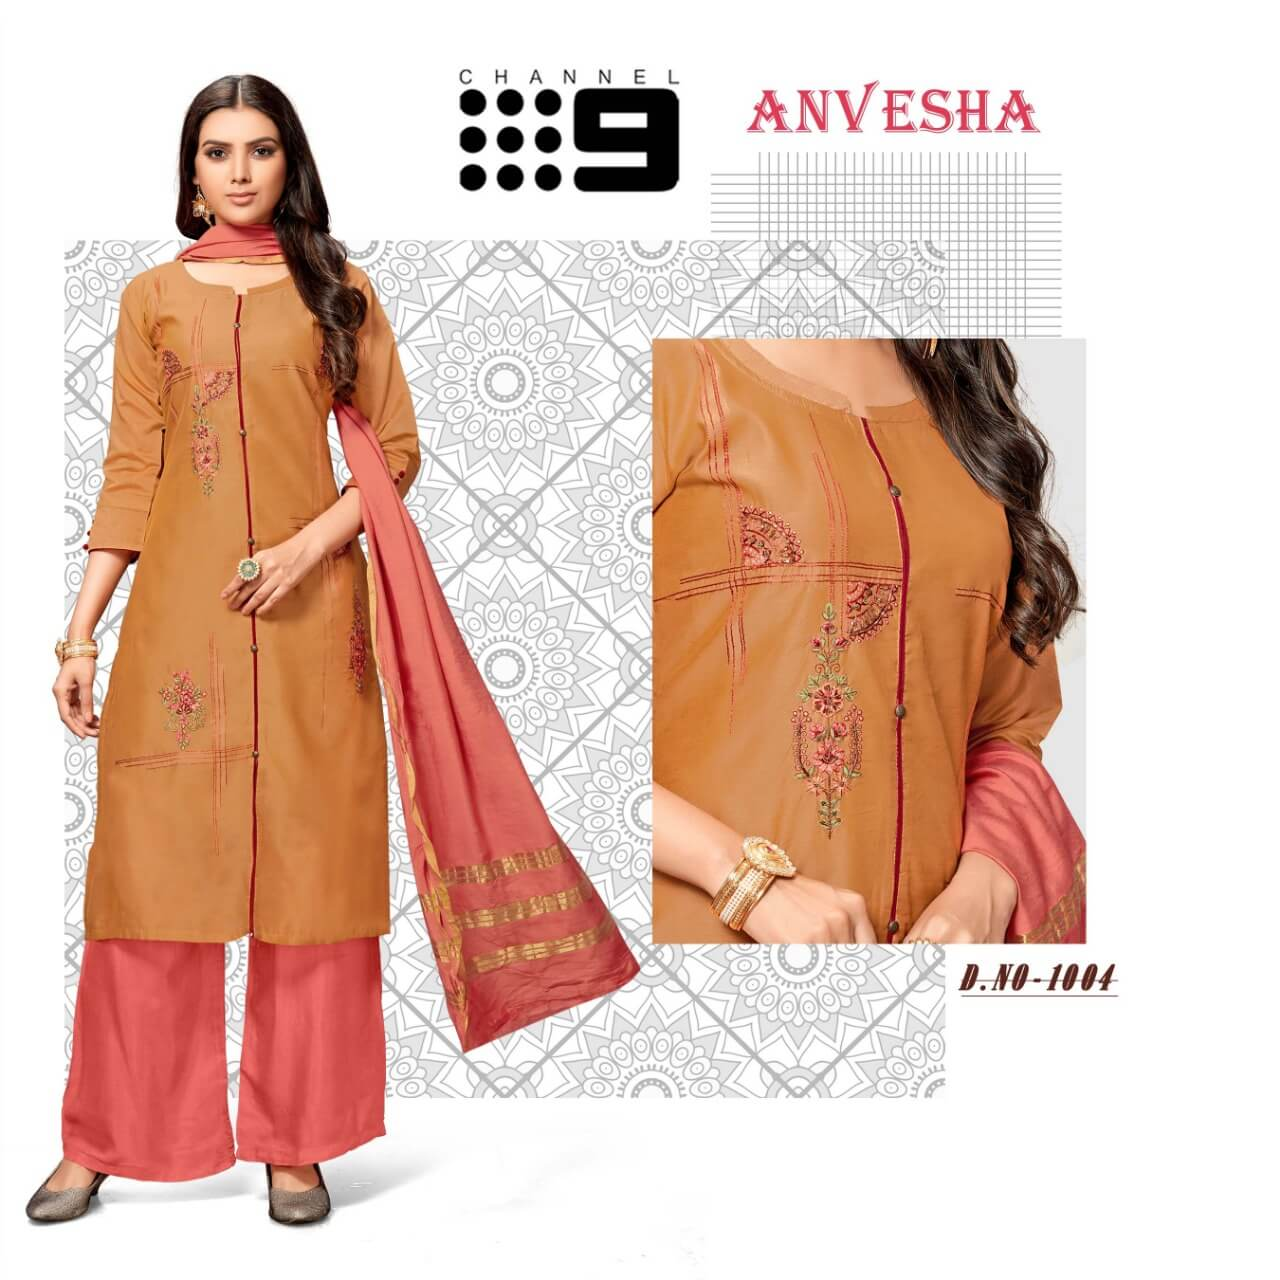 Channel 9 Anvesha collection 3